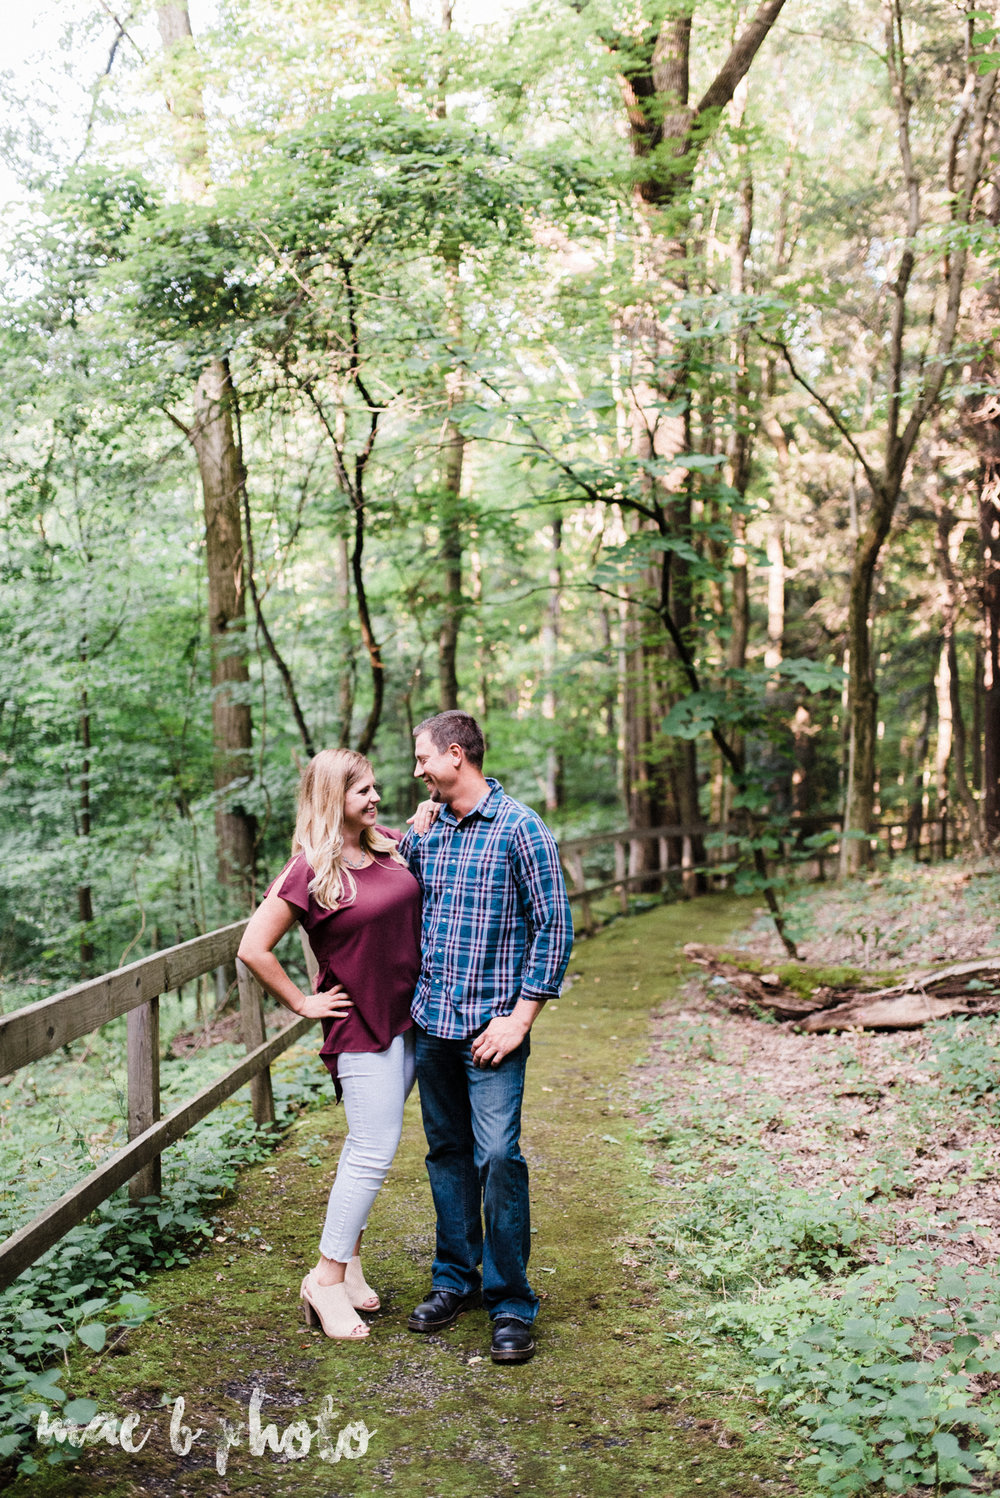 becca and rich's woodsy summer engagement session at ford nature center in mill creek park in youngstown ohio photographed by cleveland wedding photographer mae b photo-8.jpg